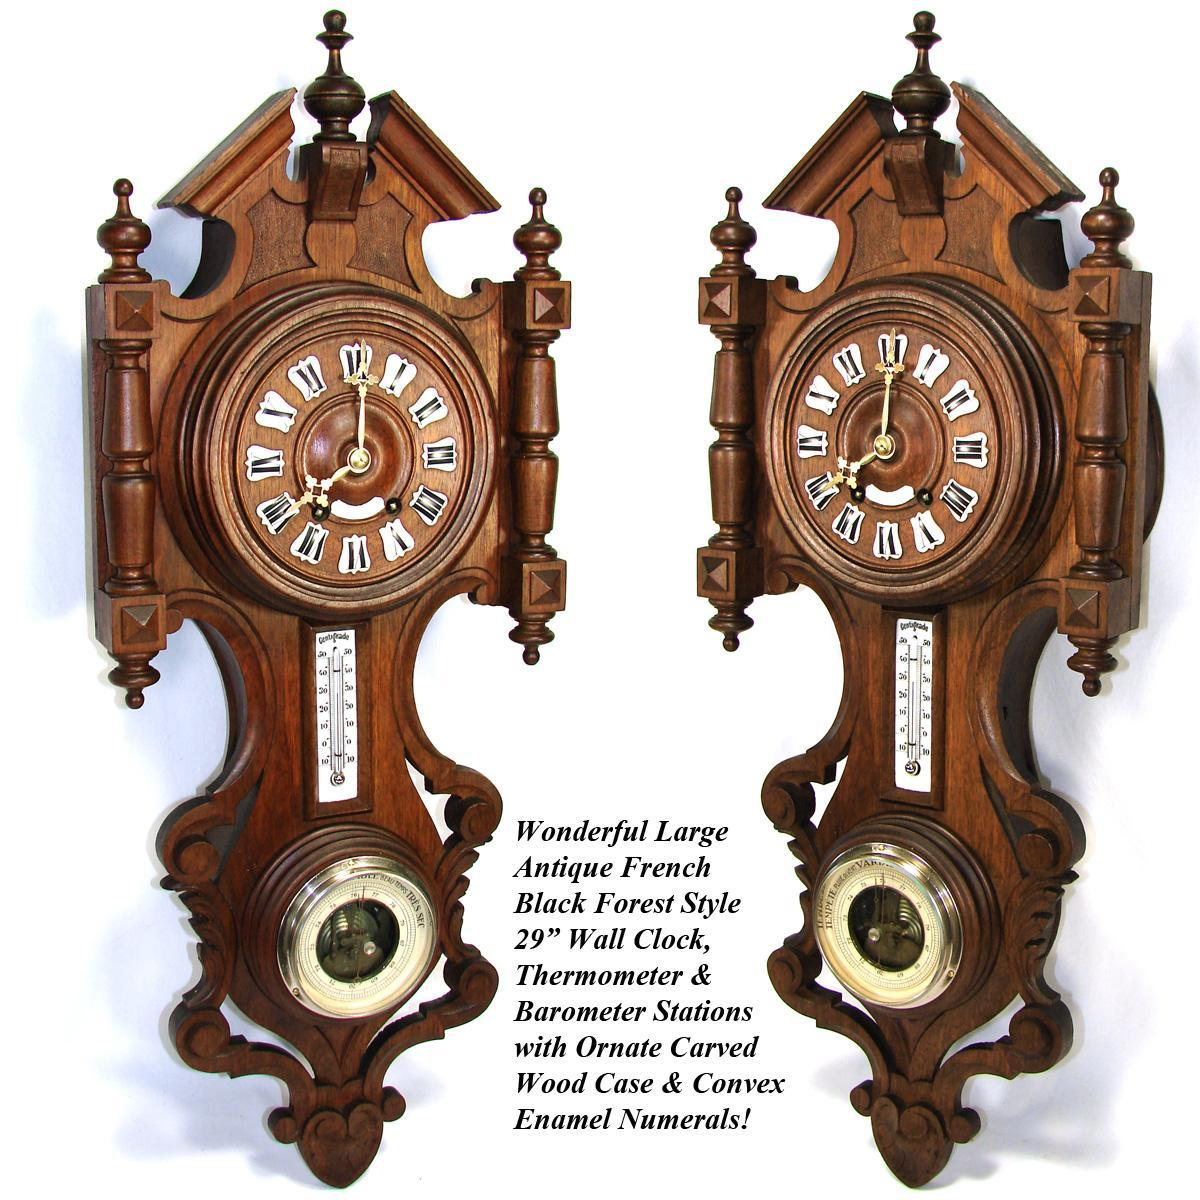 Lg antique french black forest style carved wood 29 wall clock roll over large image to magnify click large image to zoom amipublicfo Images